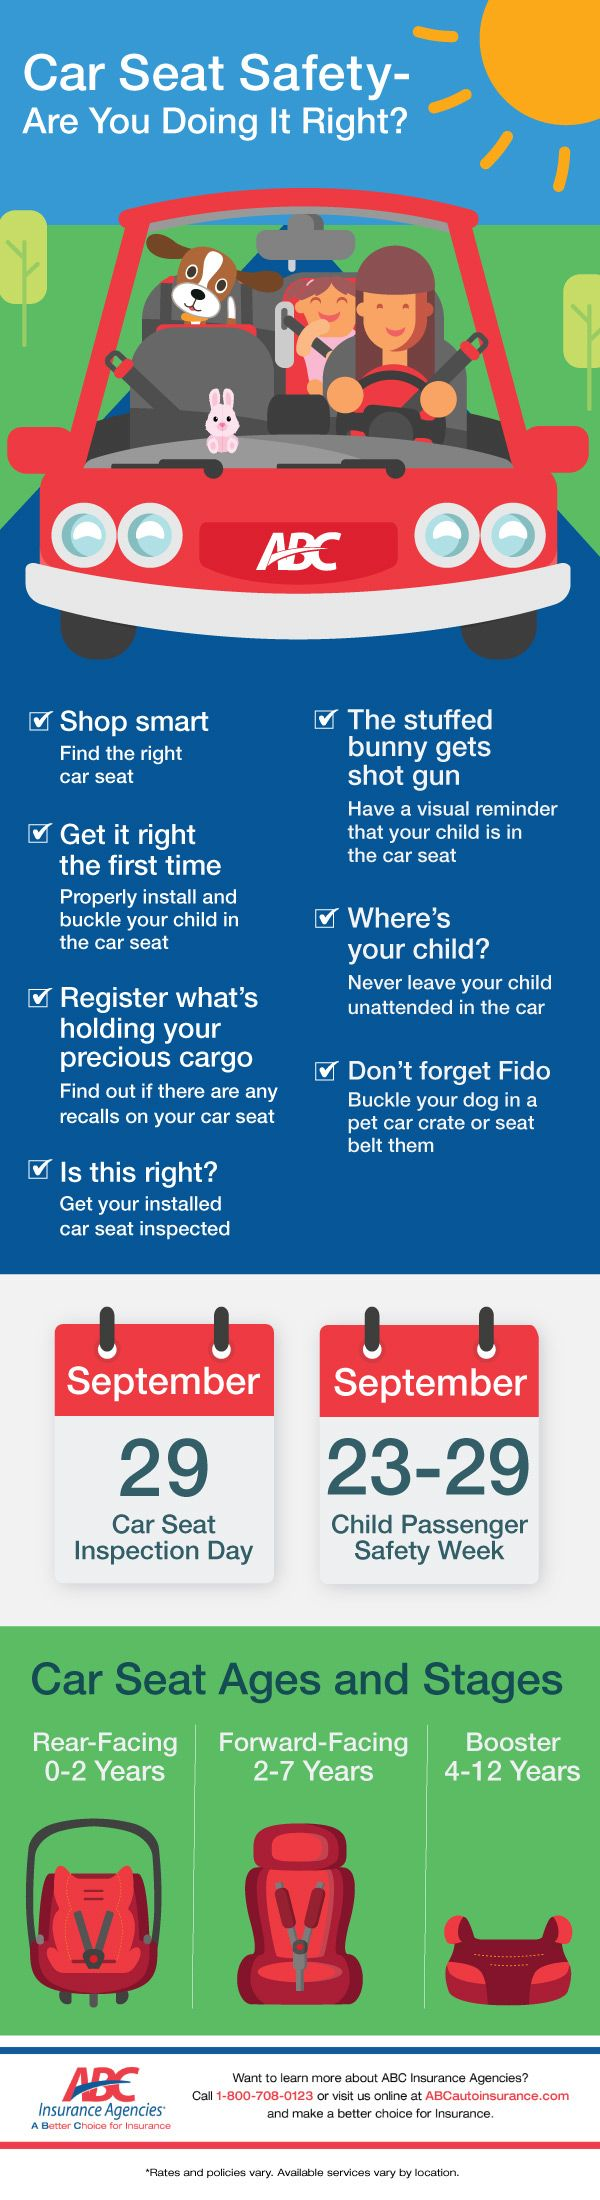 Car Seat Safety Check Carseat safety, Safe driving tips